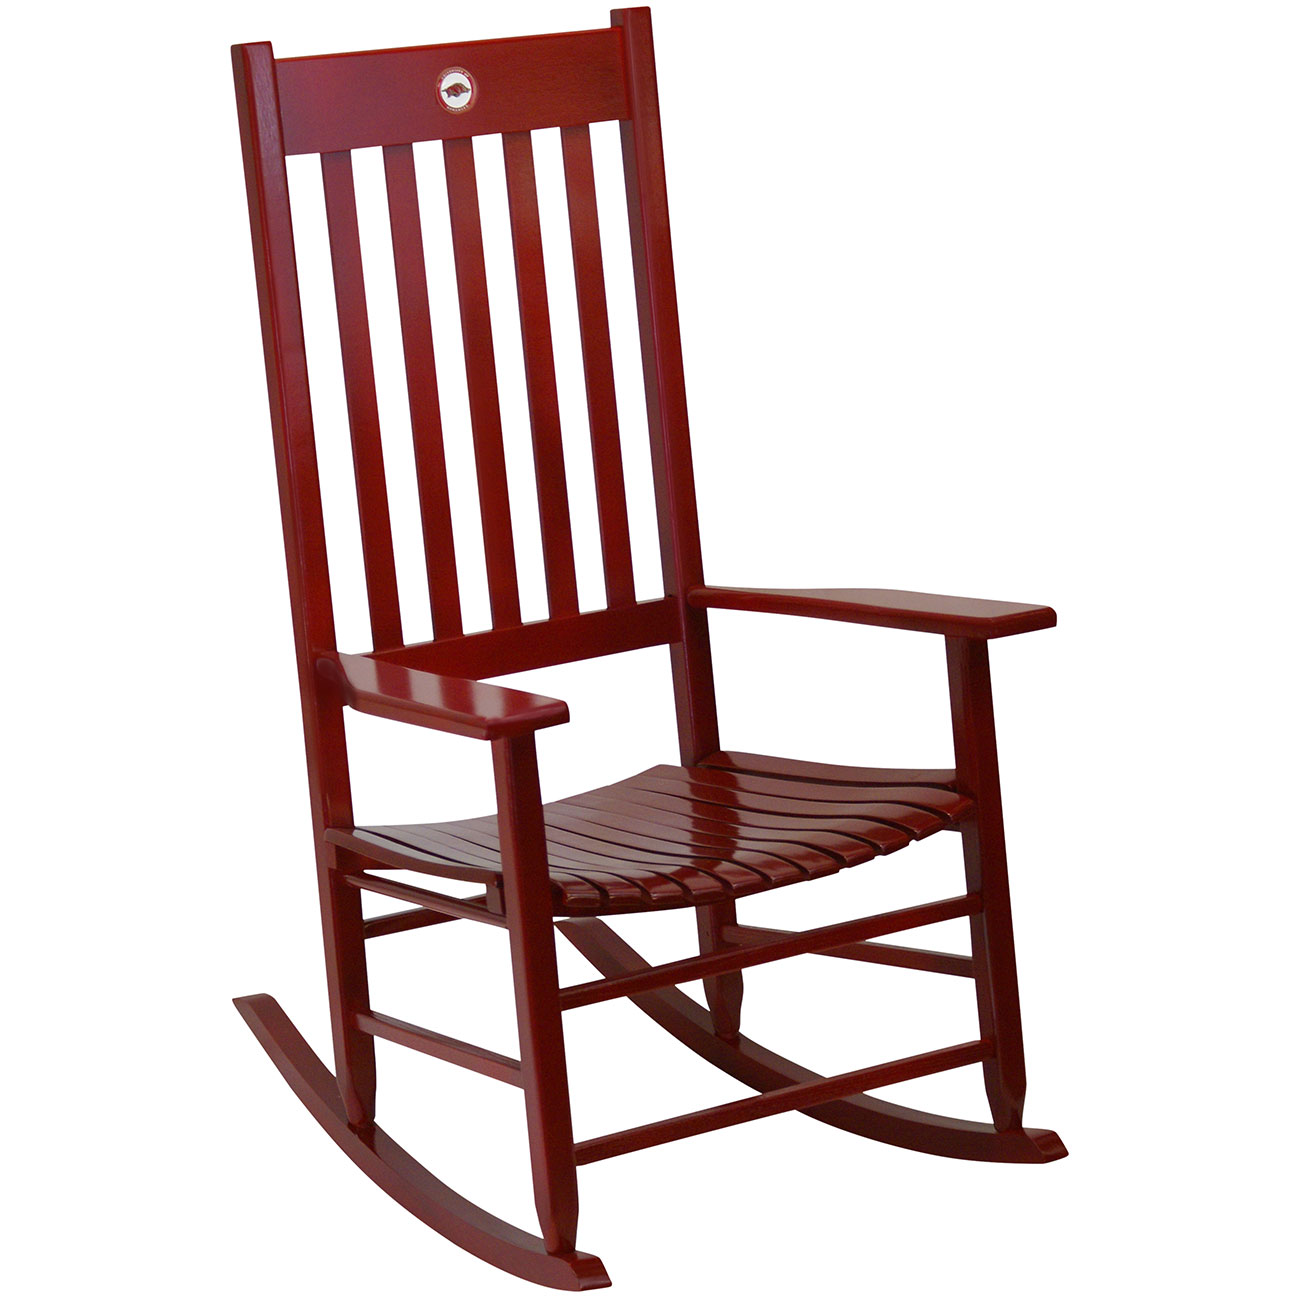 cracker barrel rocking chair reviews desk chairs ikea indoor wooden old country store team color arkansas